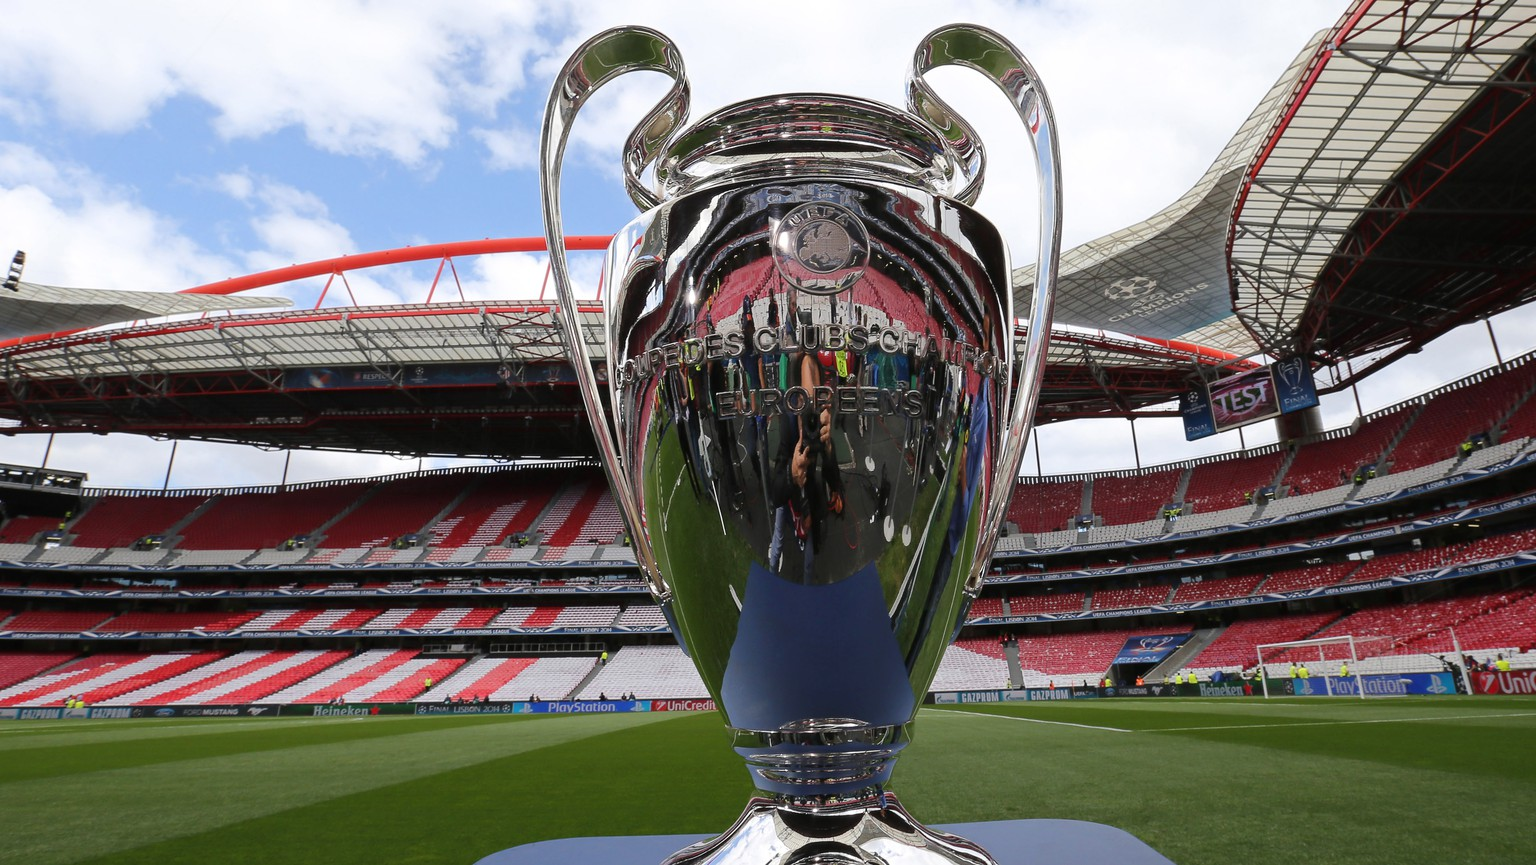 epa08487674 (FILE) - The UEFA Champions League trophy on display prior to the UEFA Champions League final between Atletico Madrid and Real Madrid at Luz Stadium in Lisbon, Portugal, 24 May 2014 (re-issued on 16 June 2020). Lisbon's Estadio da Luz is expected to host the 2020 UEFA Champions League final in a decision by the UEFA executive committee set to be announced on 17 June 2020.  EPA/HUGO DELGADO *** Local Caption *** 51384305